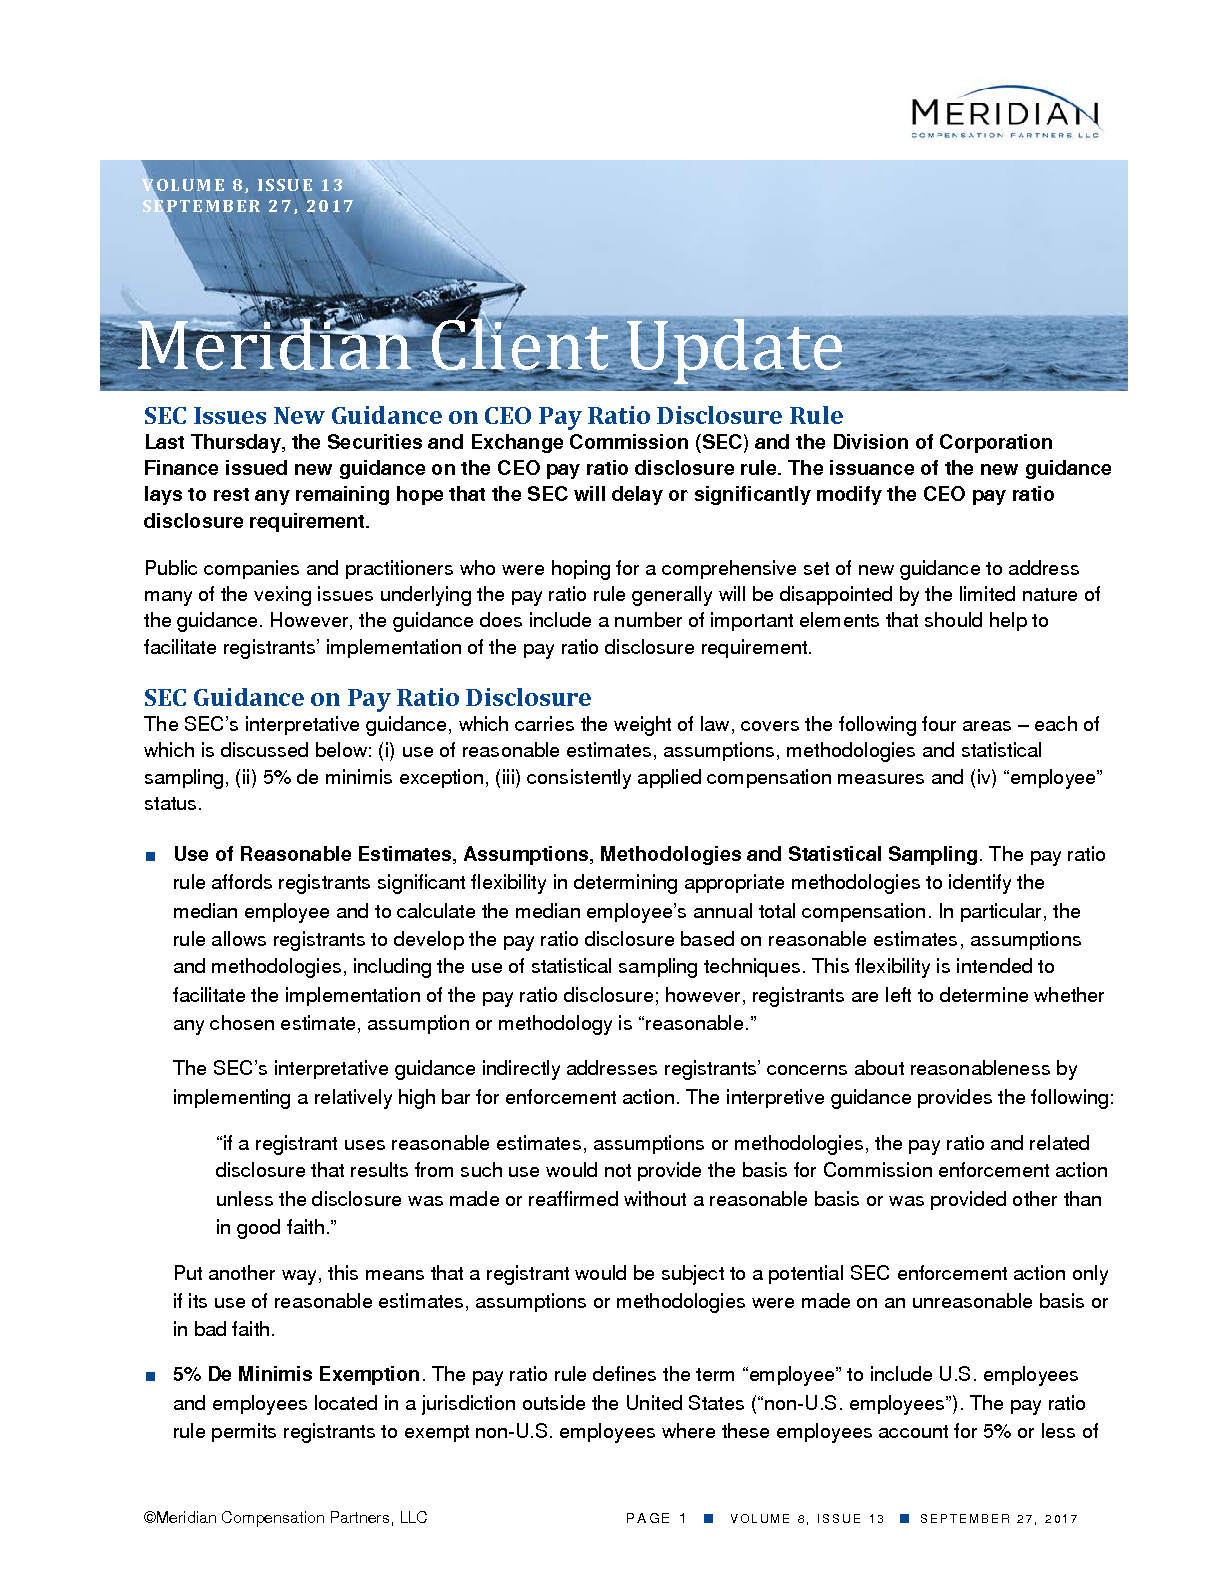 SEC Issues New Guidance on CEO Pay Ratio Disclosure Rule (PDF)